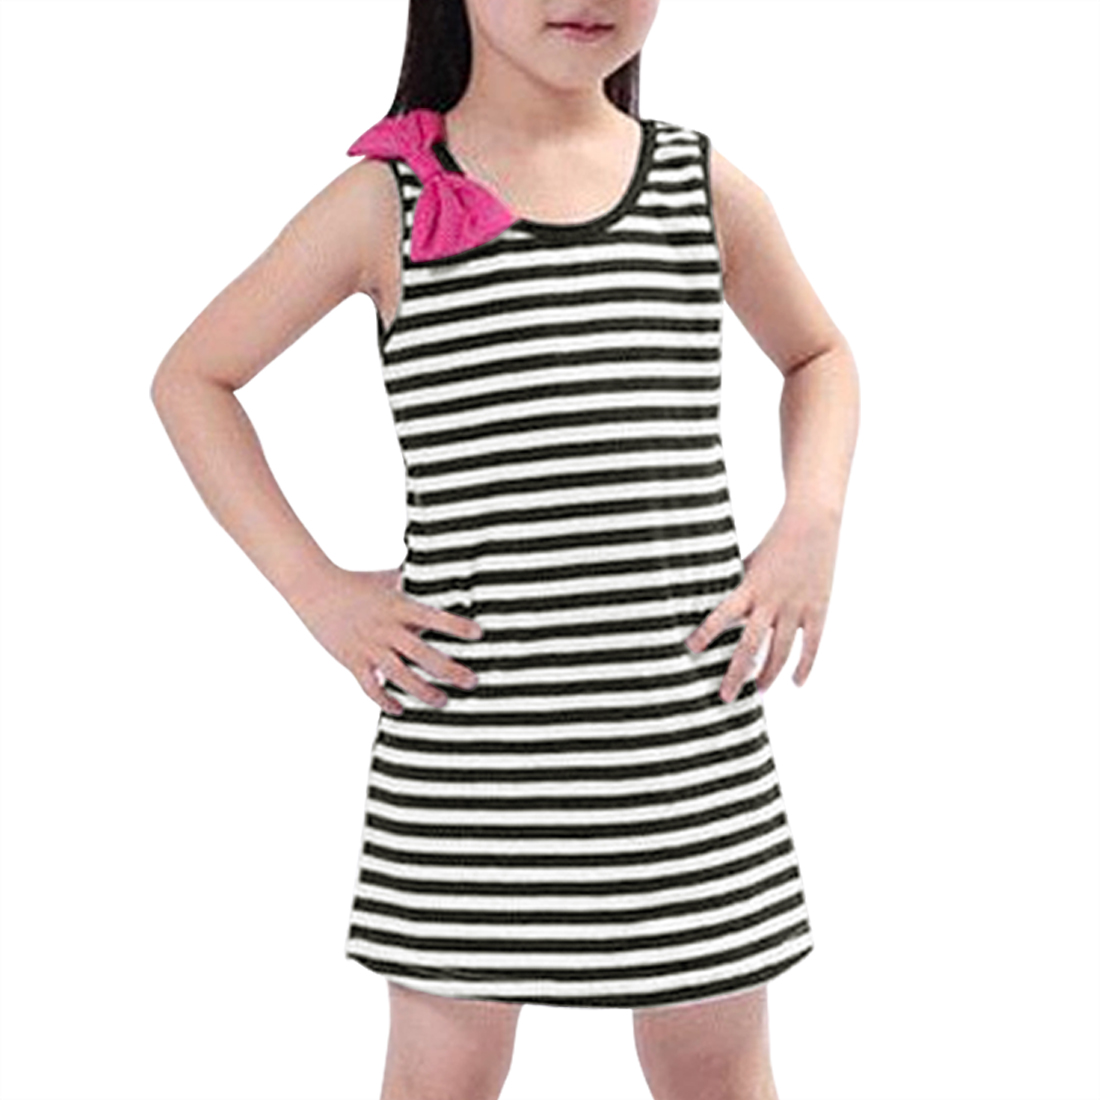 Girls Stripes Bowknot Decor Sleeveless Tank Dress Allegra Kids Black White 2T